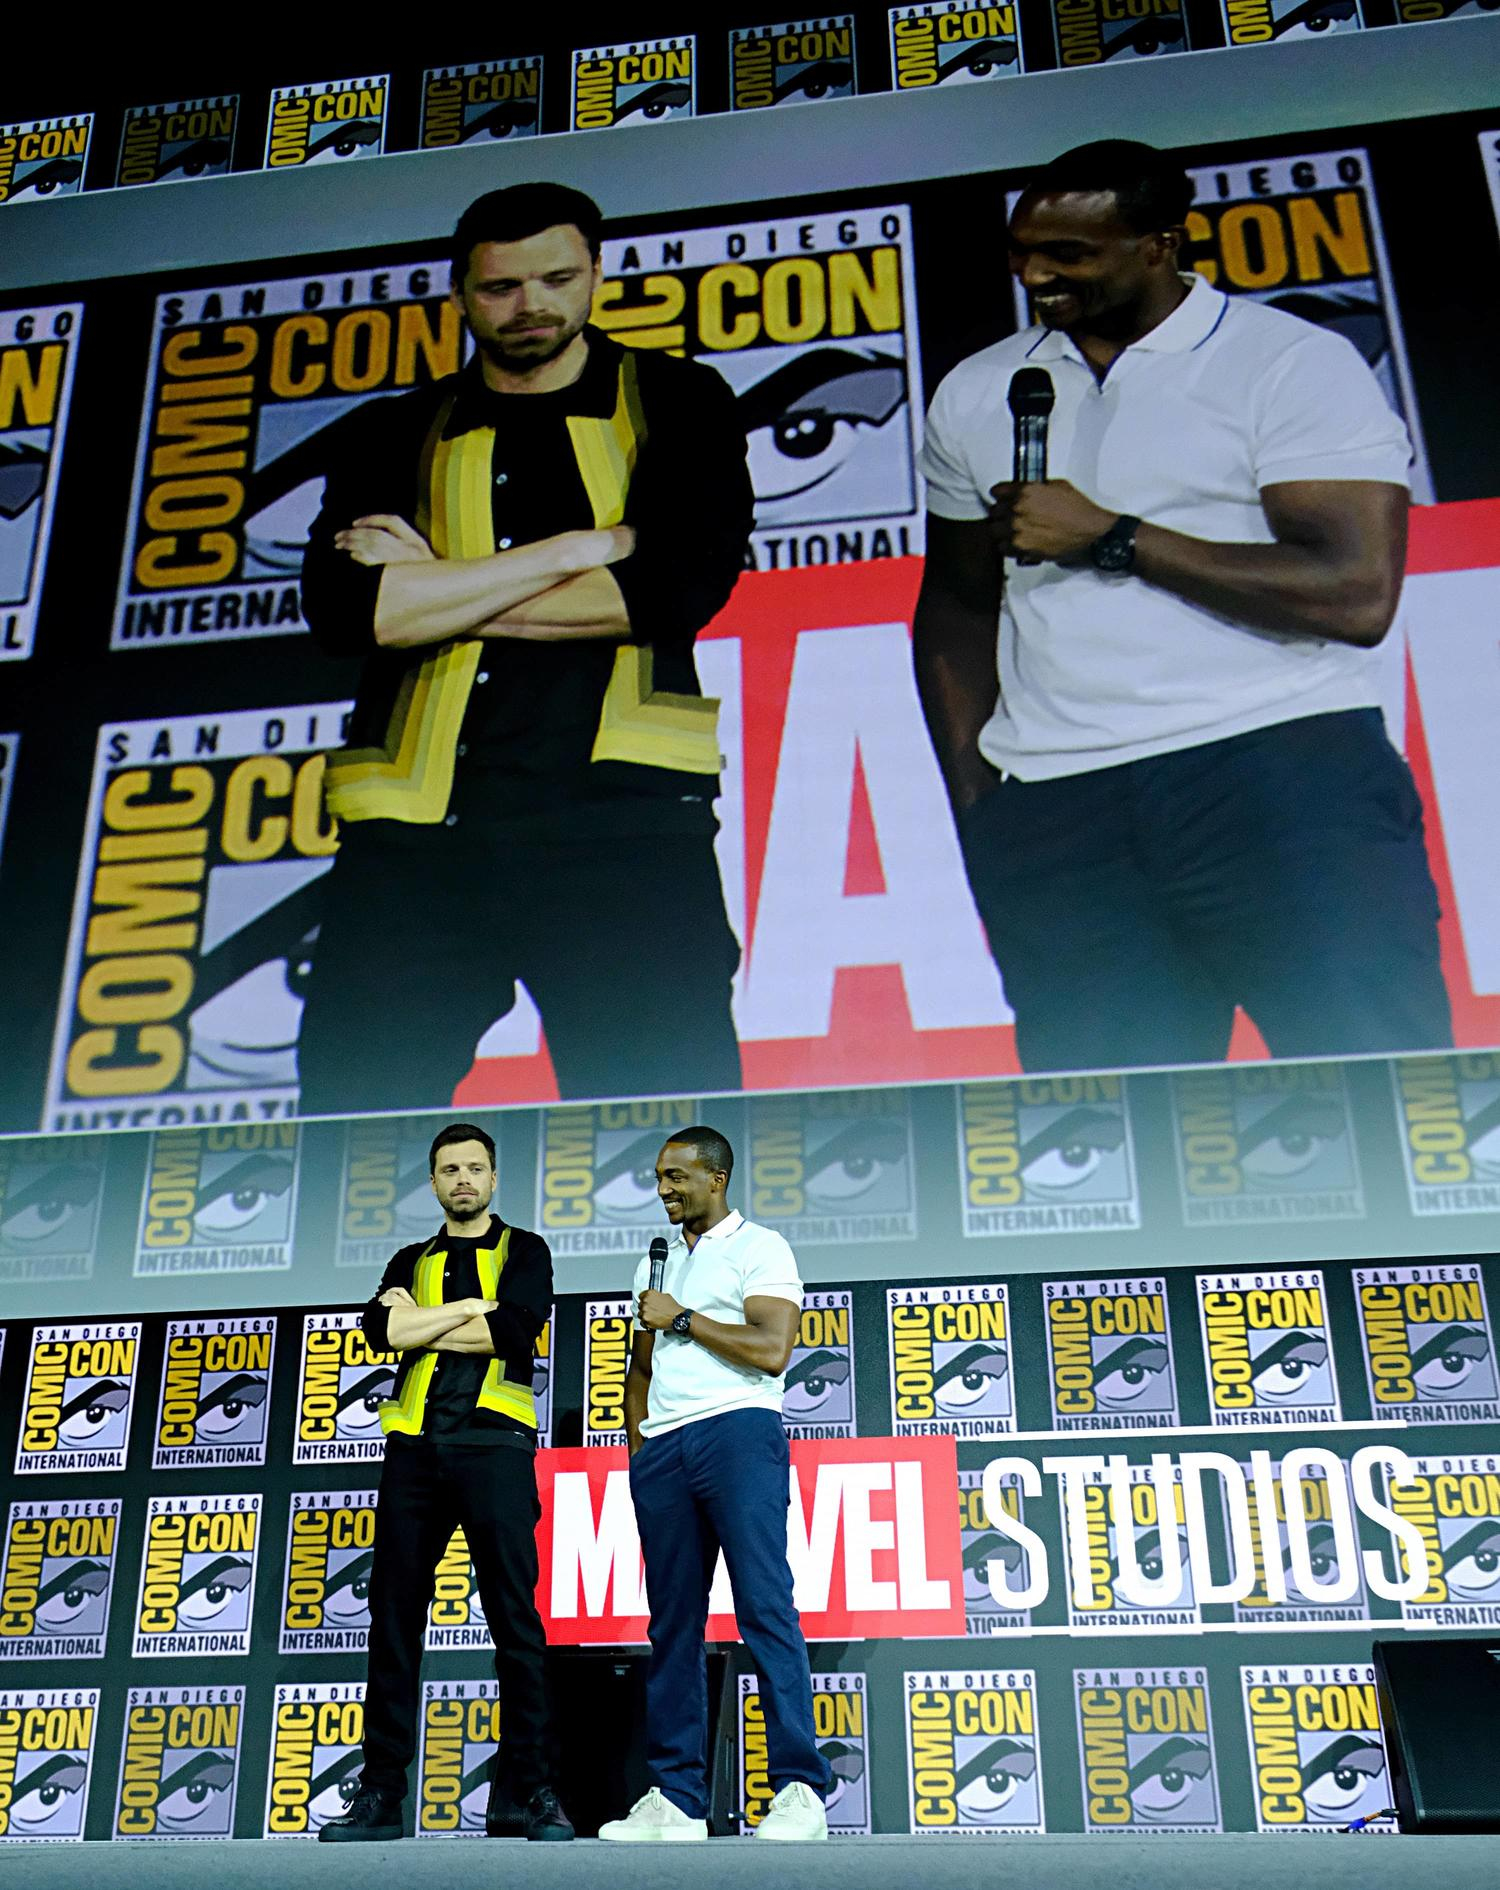 Stars Anthony Mackie and Sebastian Stan